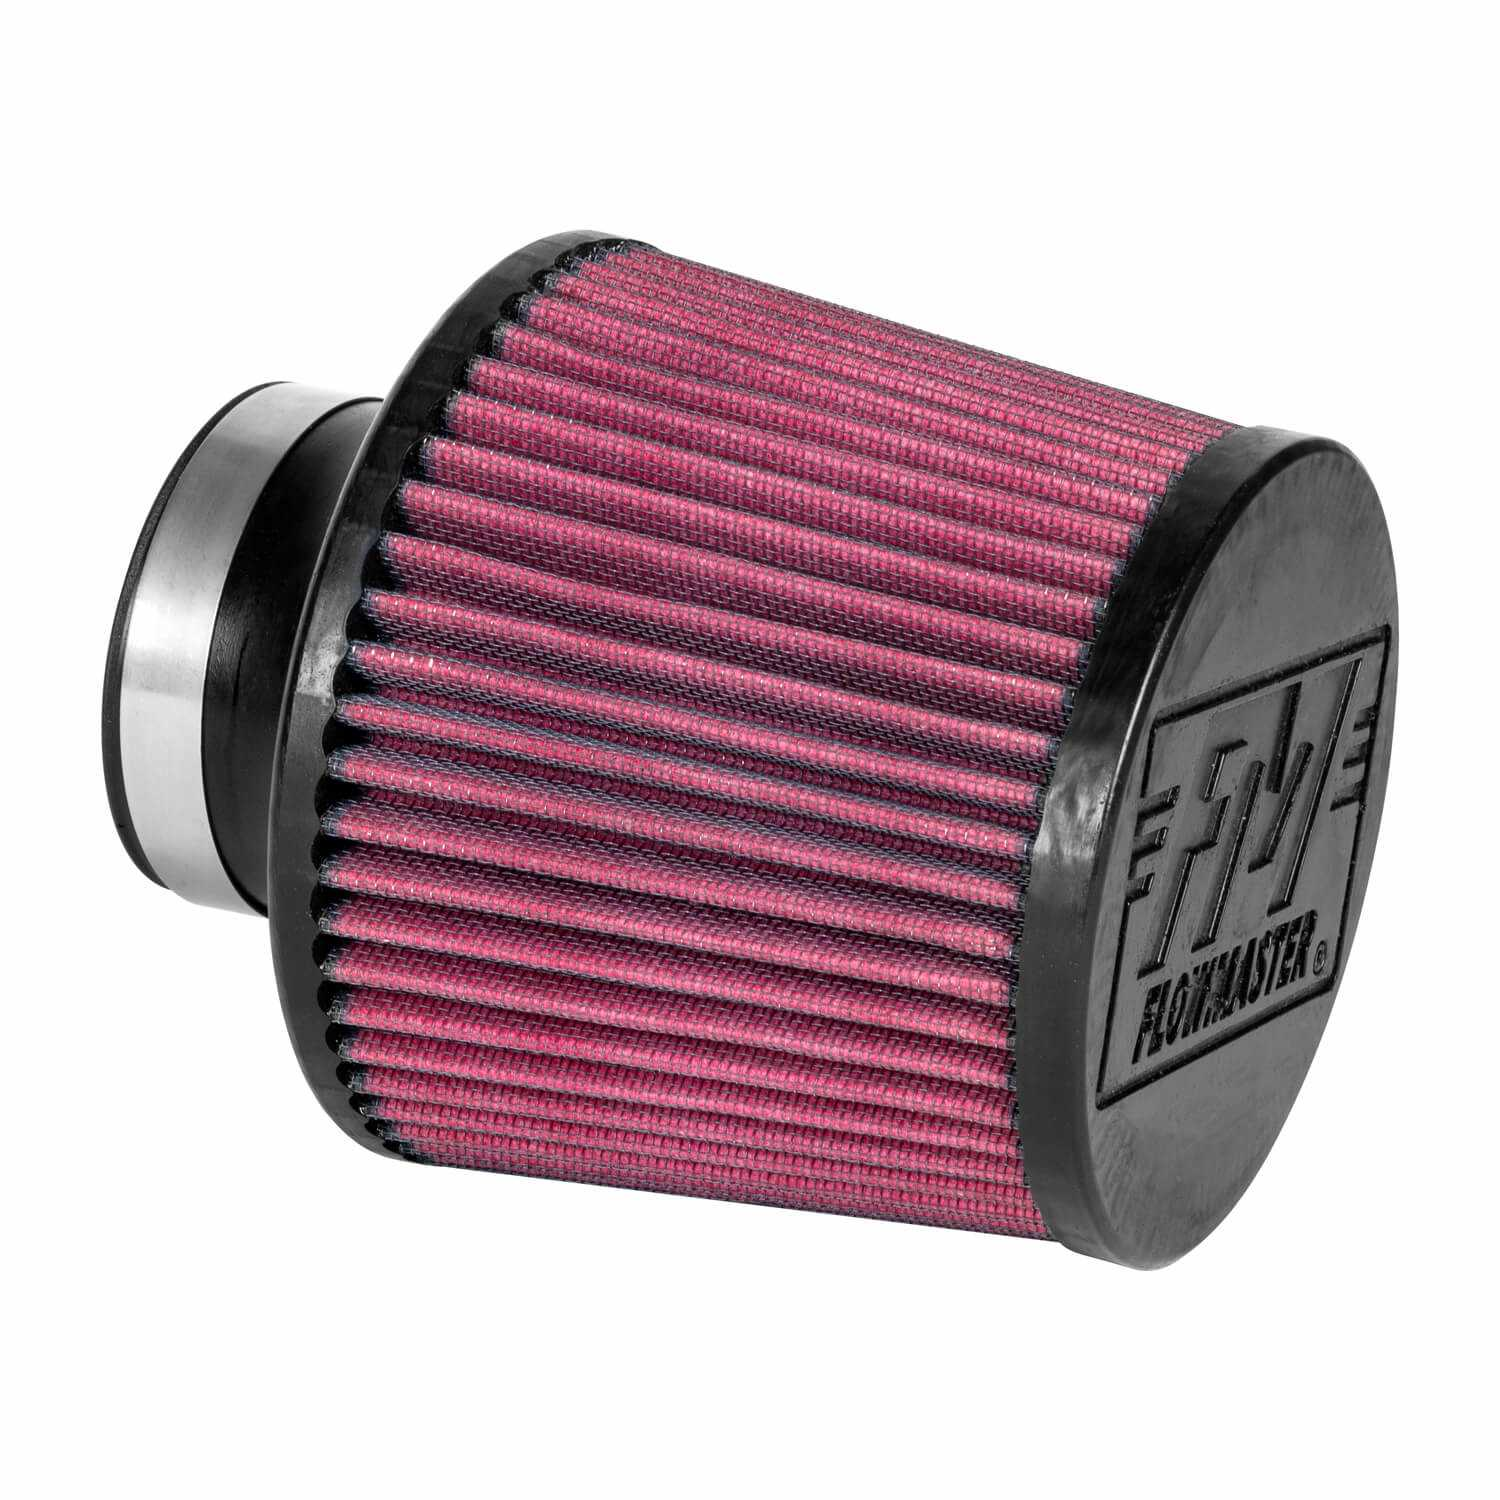 615013 Flowmaster Delta Force®Cold Air Intake Filter